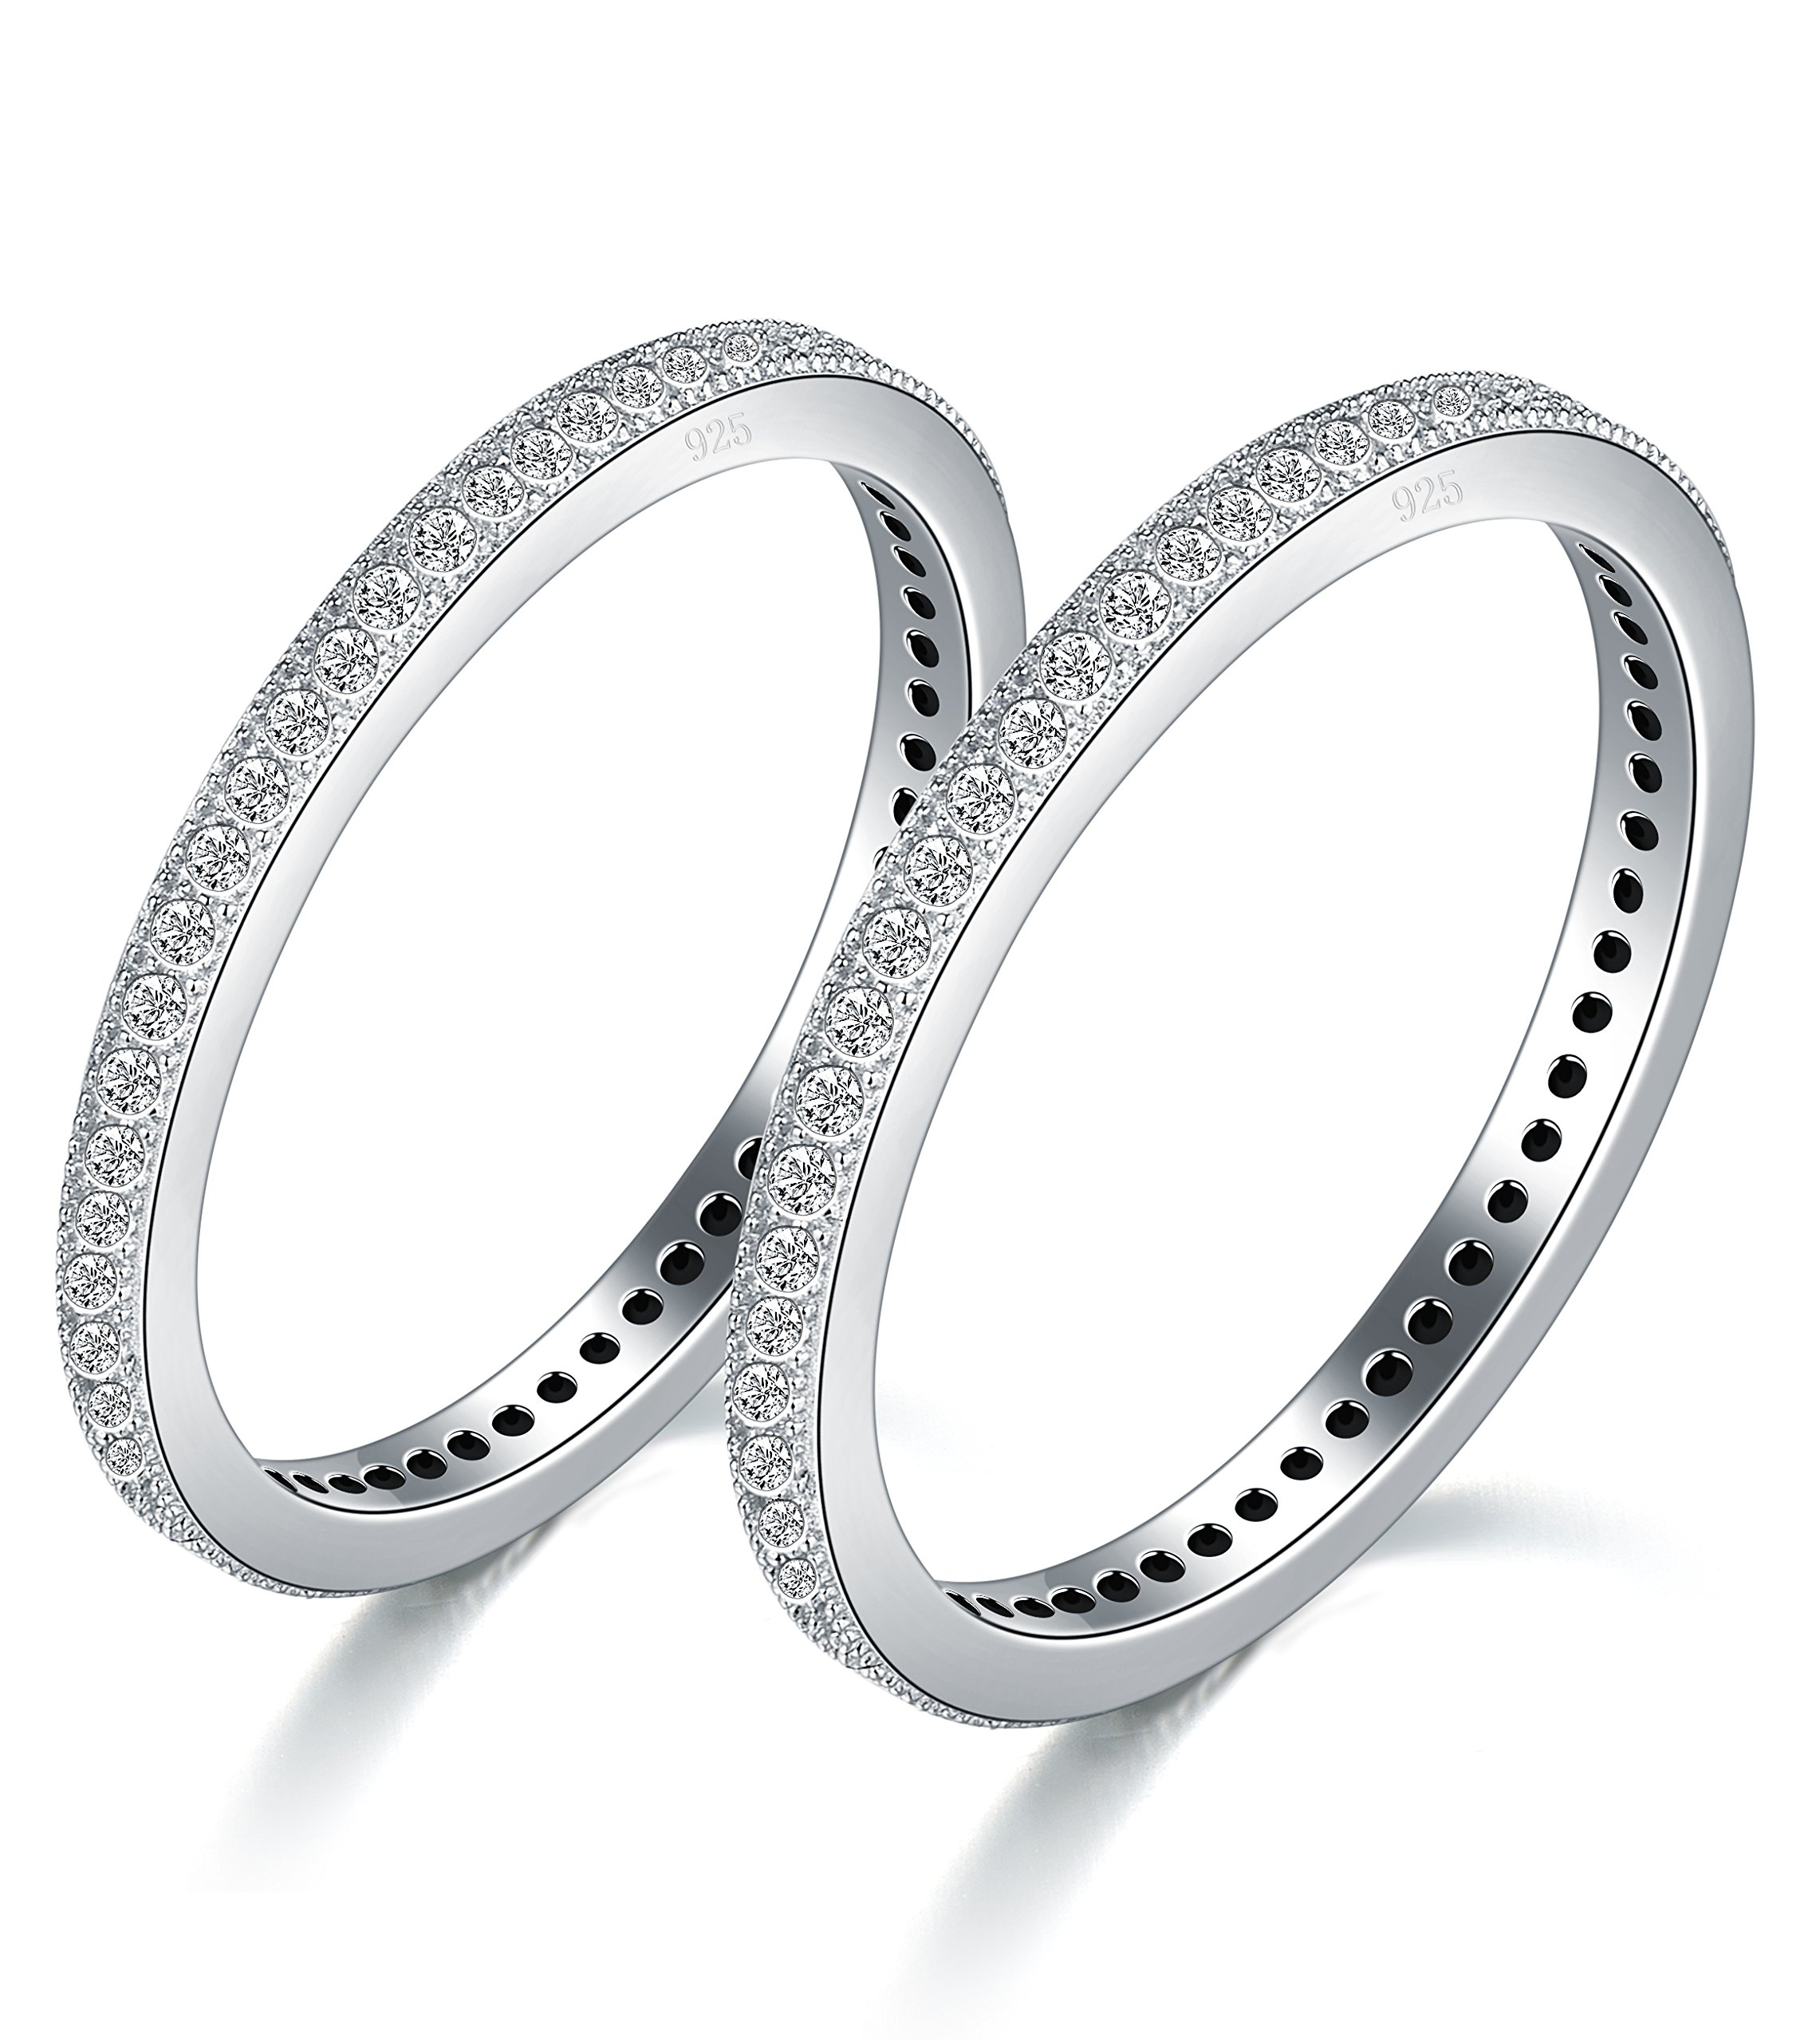 BORUO 2MM 925 Sterling Silver Ring, Cubic Zirconia CZ Wedding Band Stackable Ring 2 Set Size 6